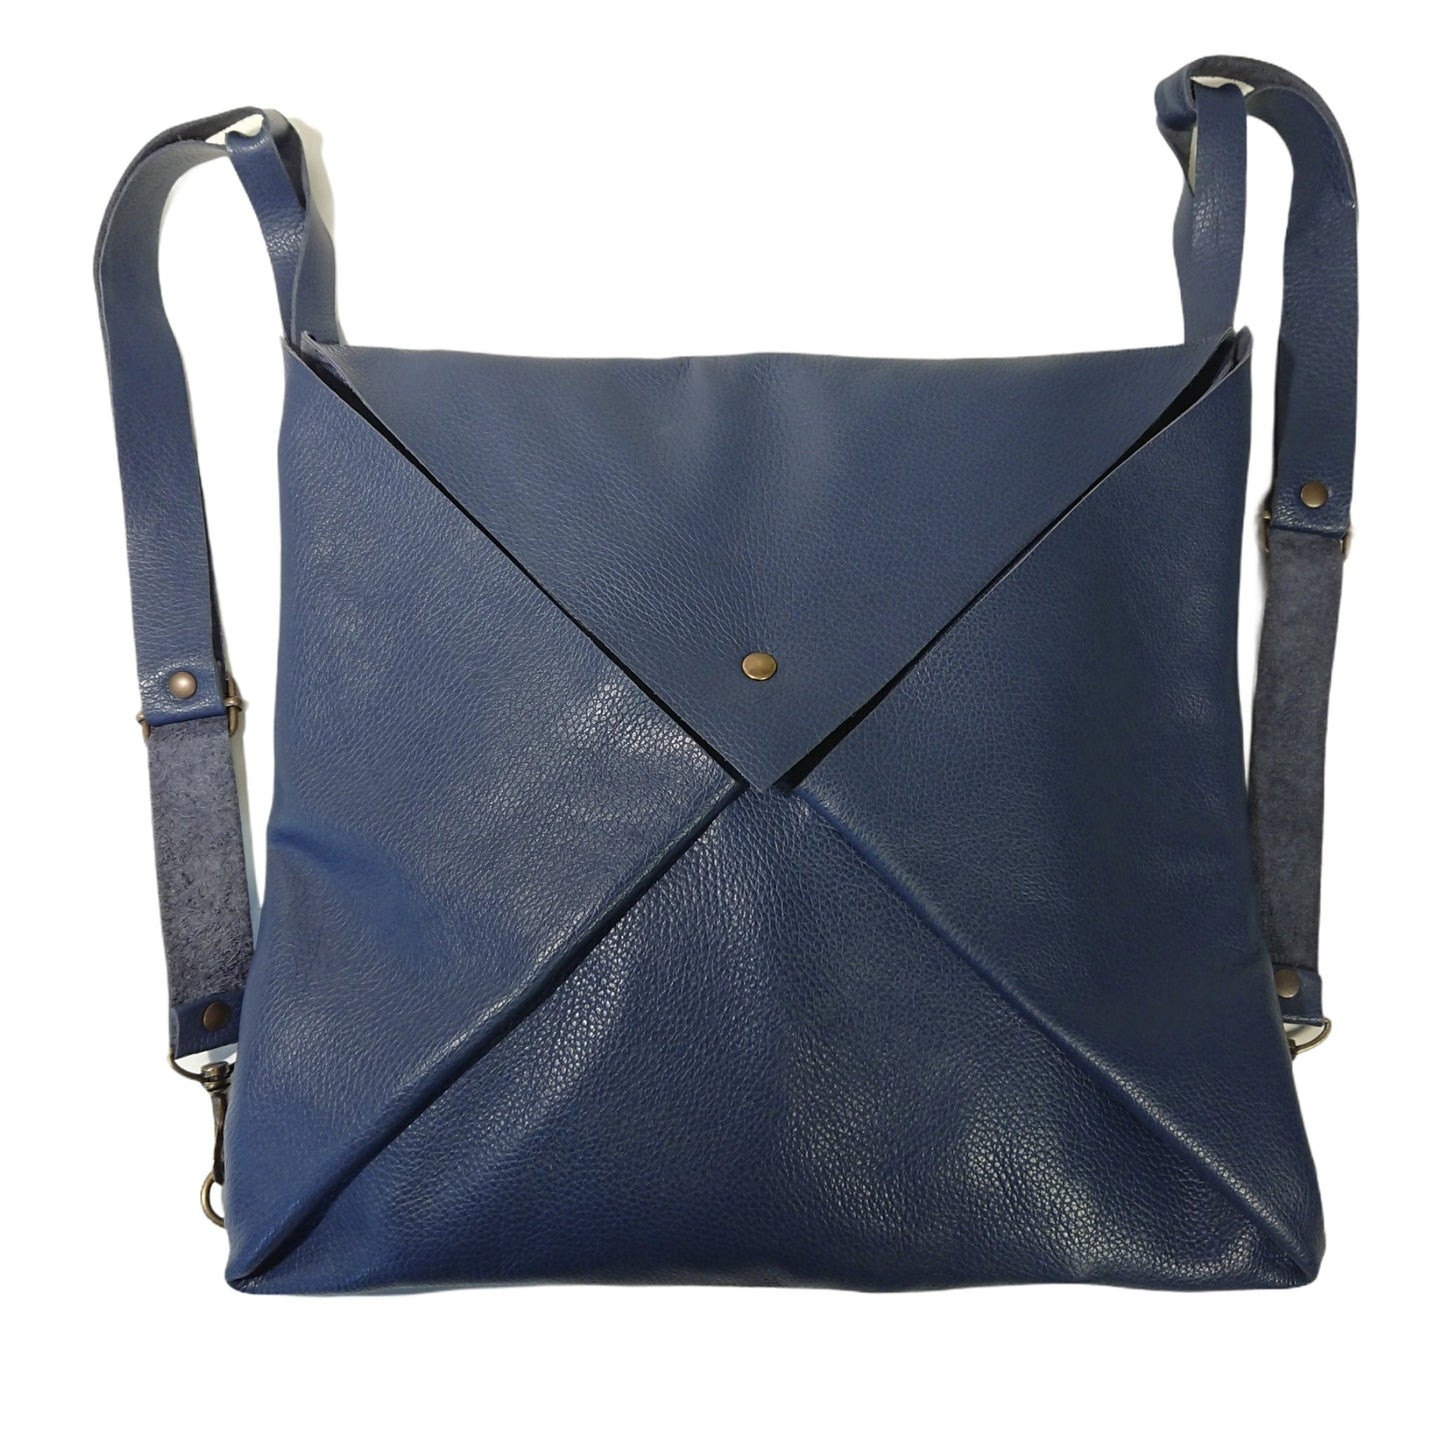 Sac Post Cuir Grained Bleu Roi-Nada Bags Paris